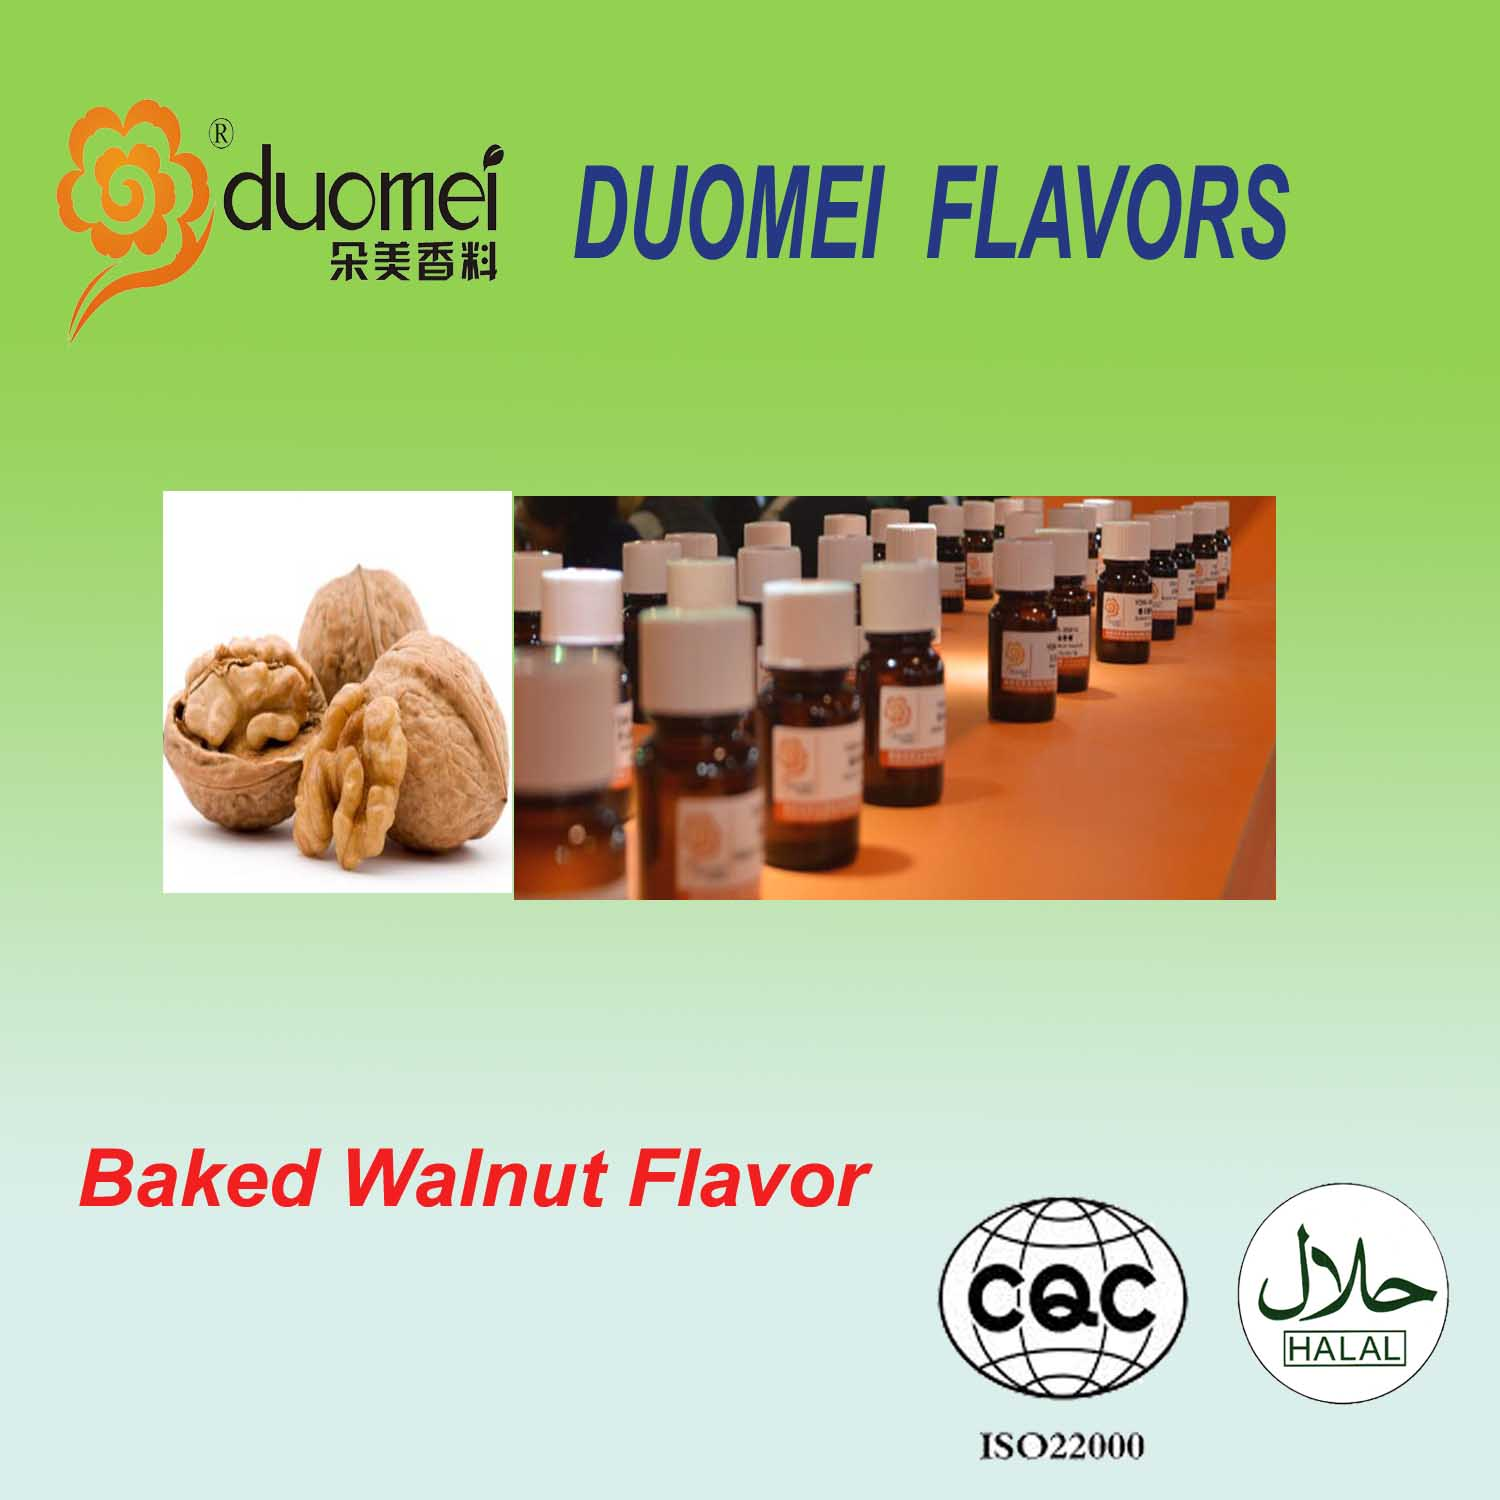 DM-21705 butter pecan flavoring from duomei company